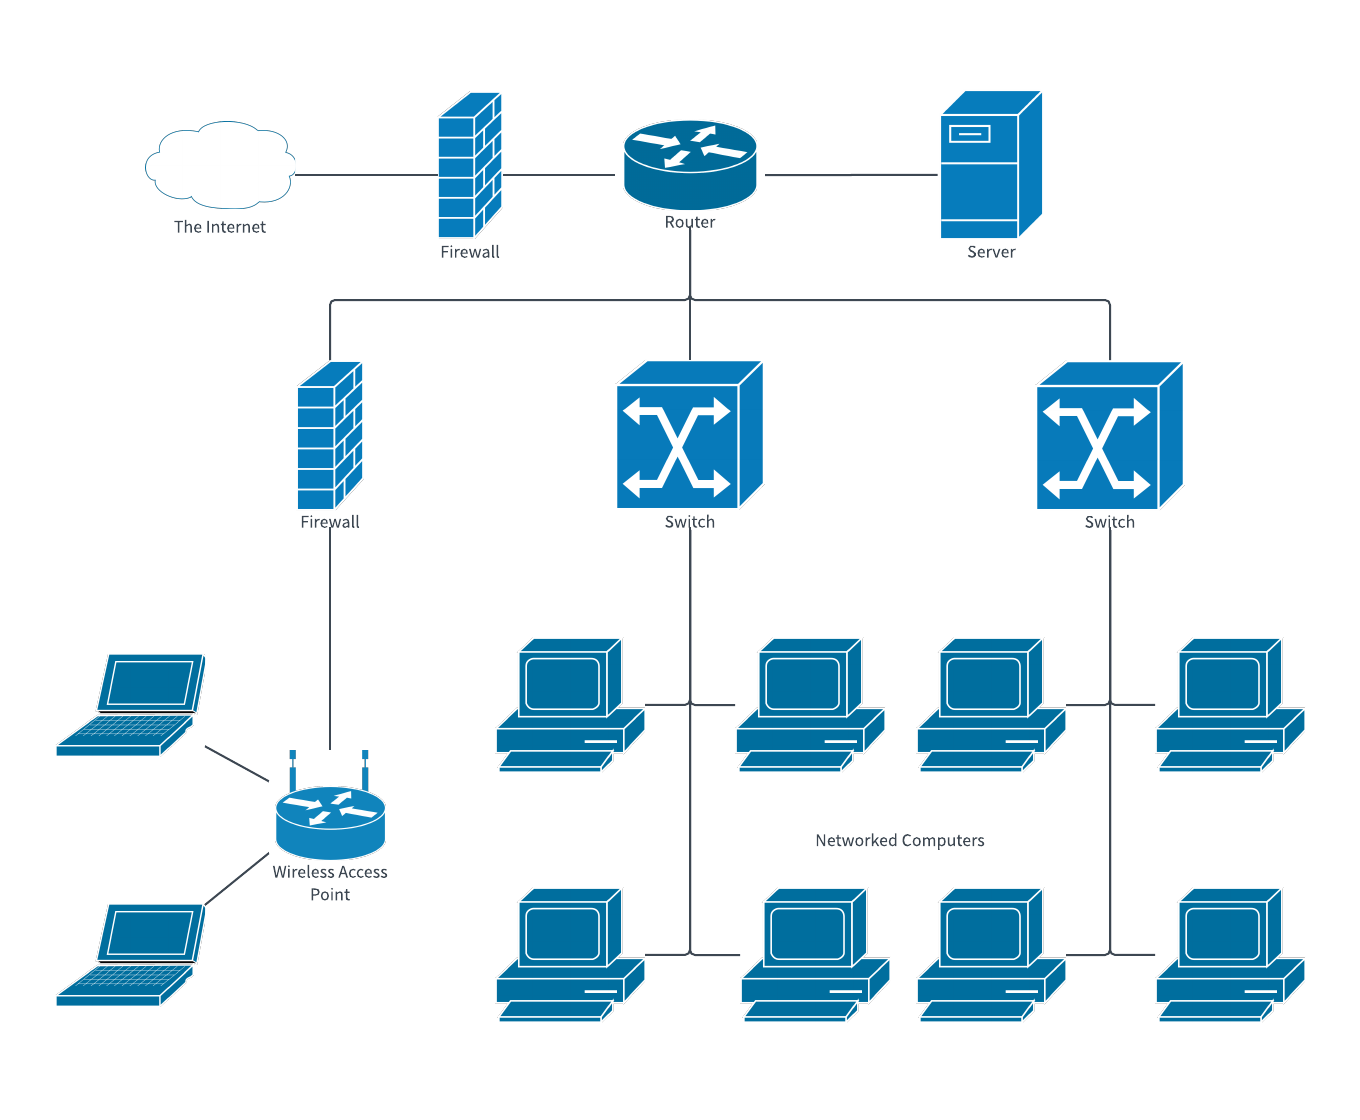 How To Draw A Network Diagram Online